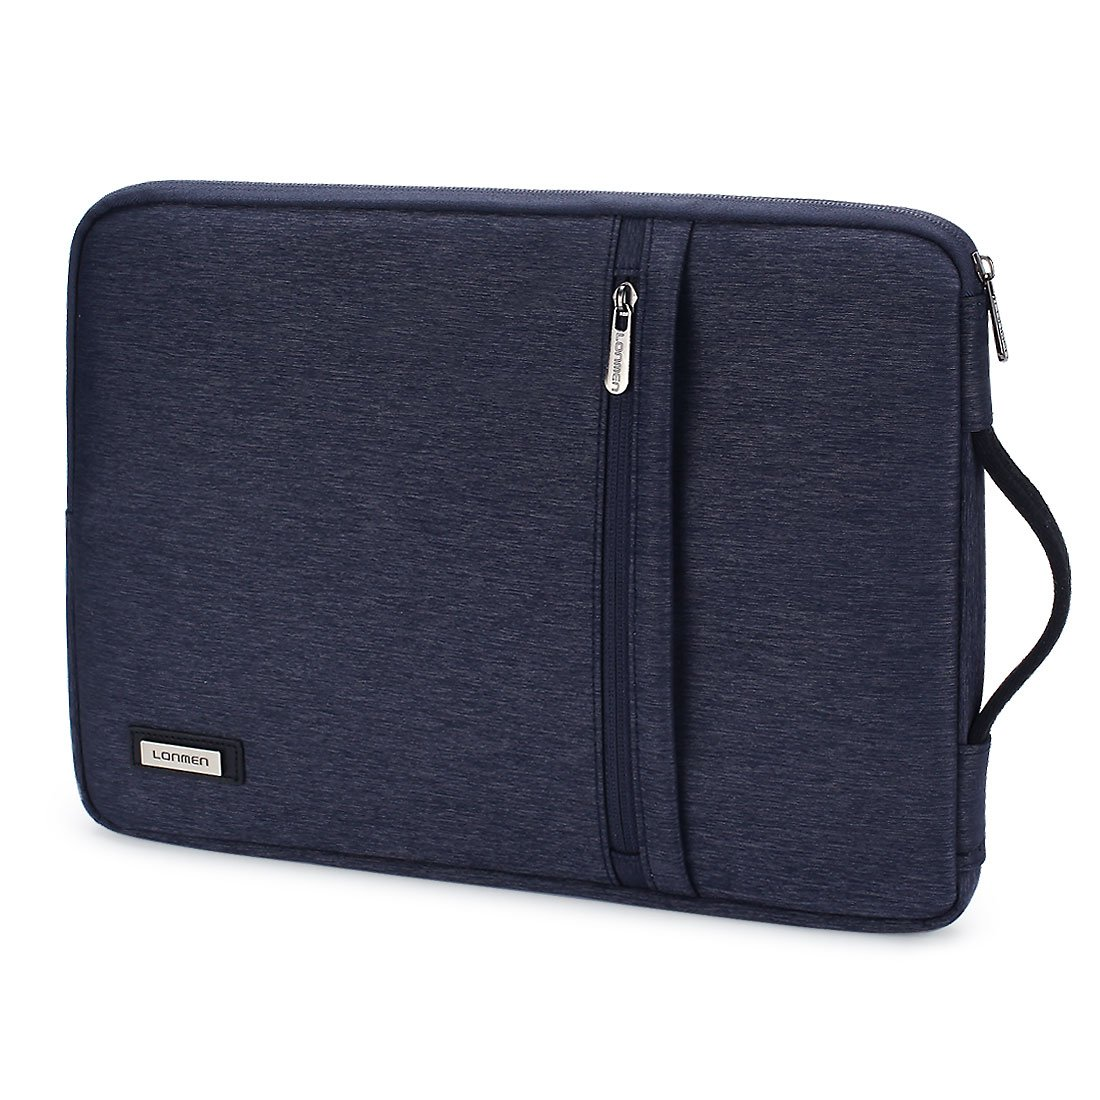 LONMEN Laptop Sleeve Waterproof 14 inch Carrying Polyester Cover Case Fit Most 14 Lenovo Dell Toshiba HP ASUS Acer Samsung Sony Notebook Computer Ultrabook with Durable Handle, Dark Grey